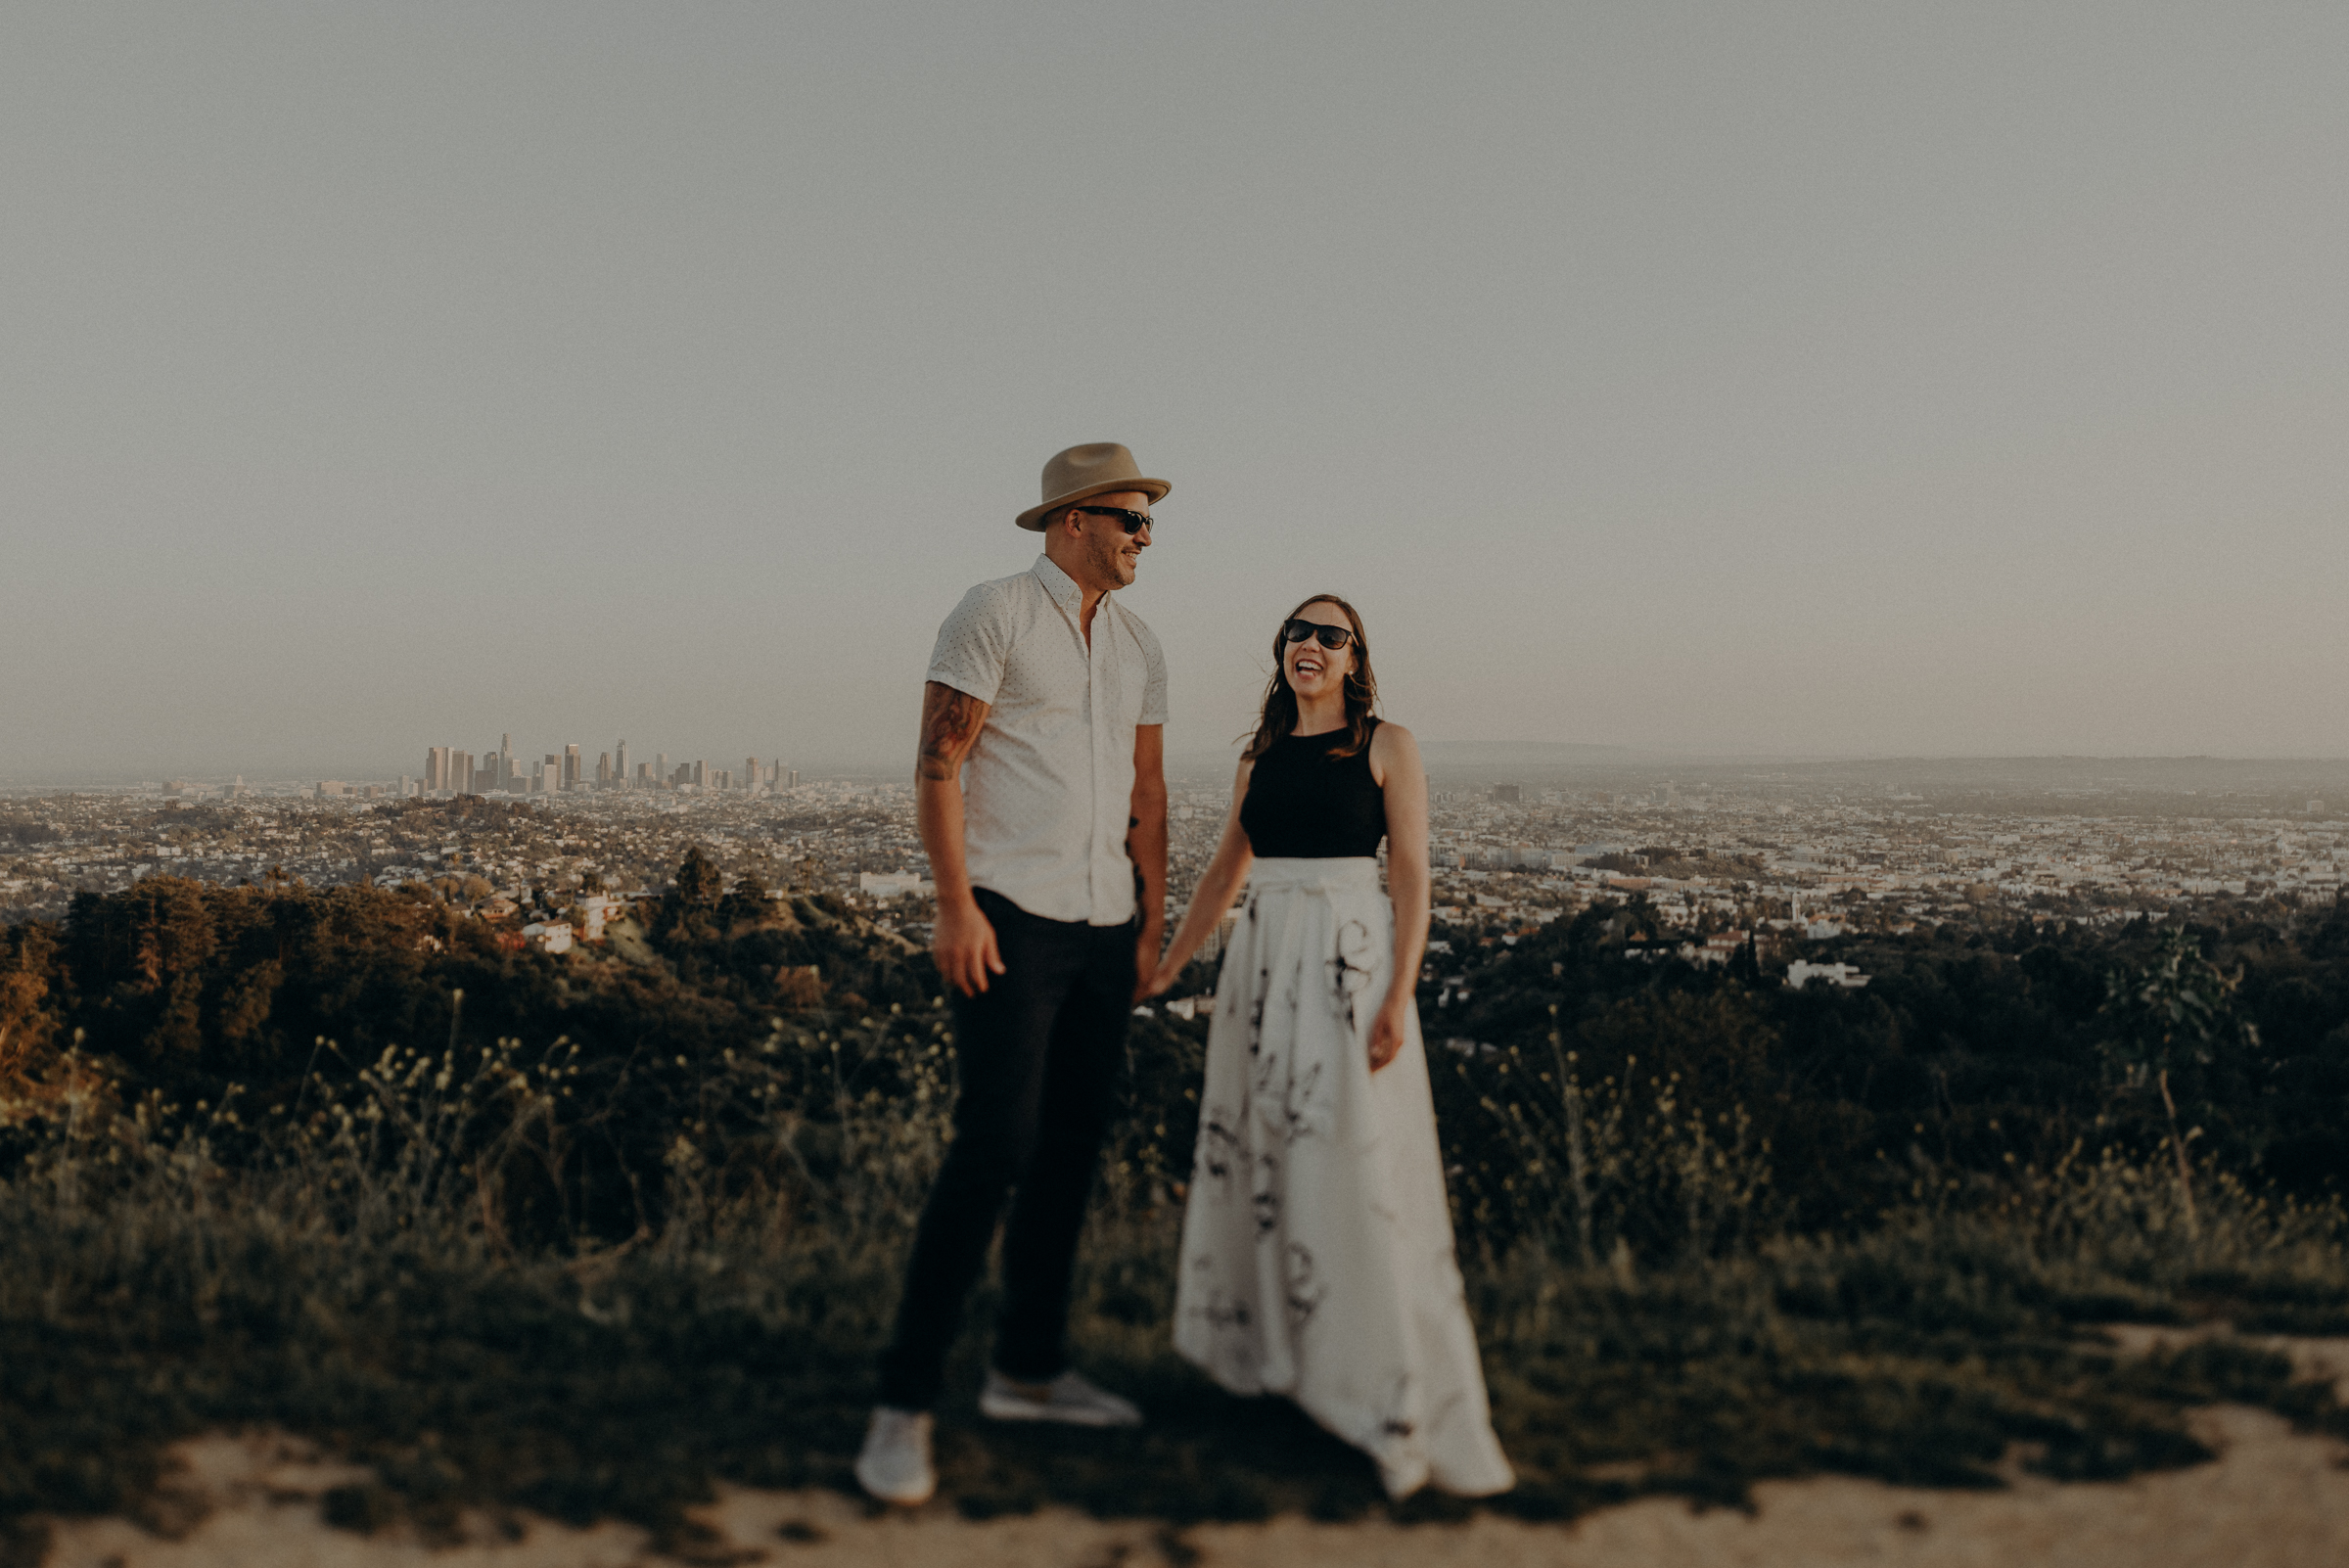 Los Angeles Wedding Photographers - Griffith Park Engagement - IsaiahAndTaylor.com-051.jpg